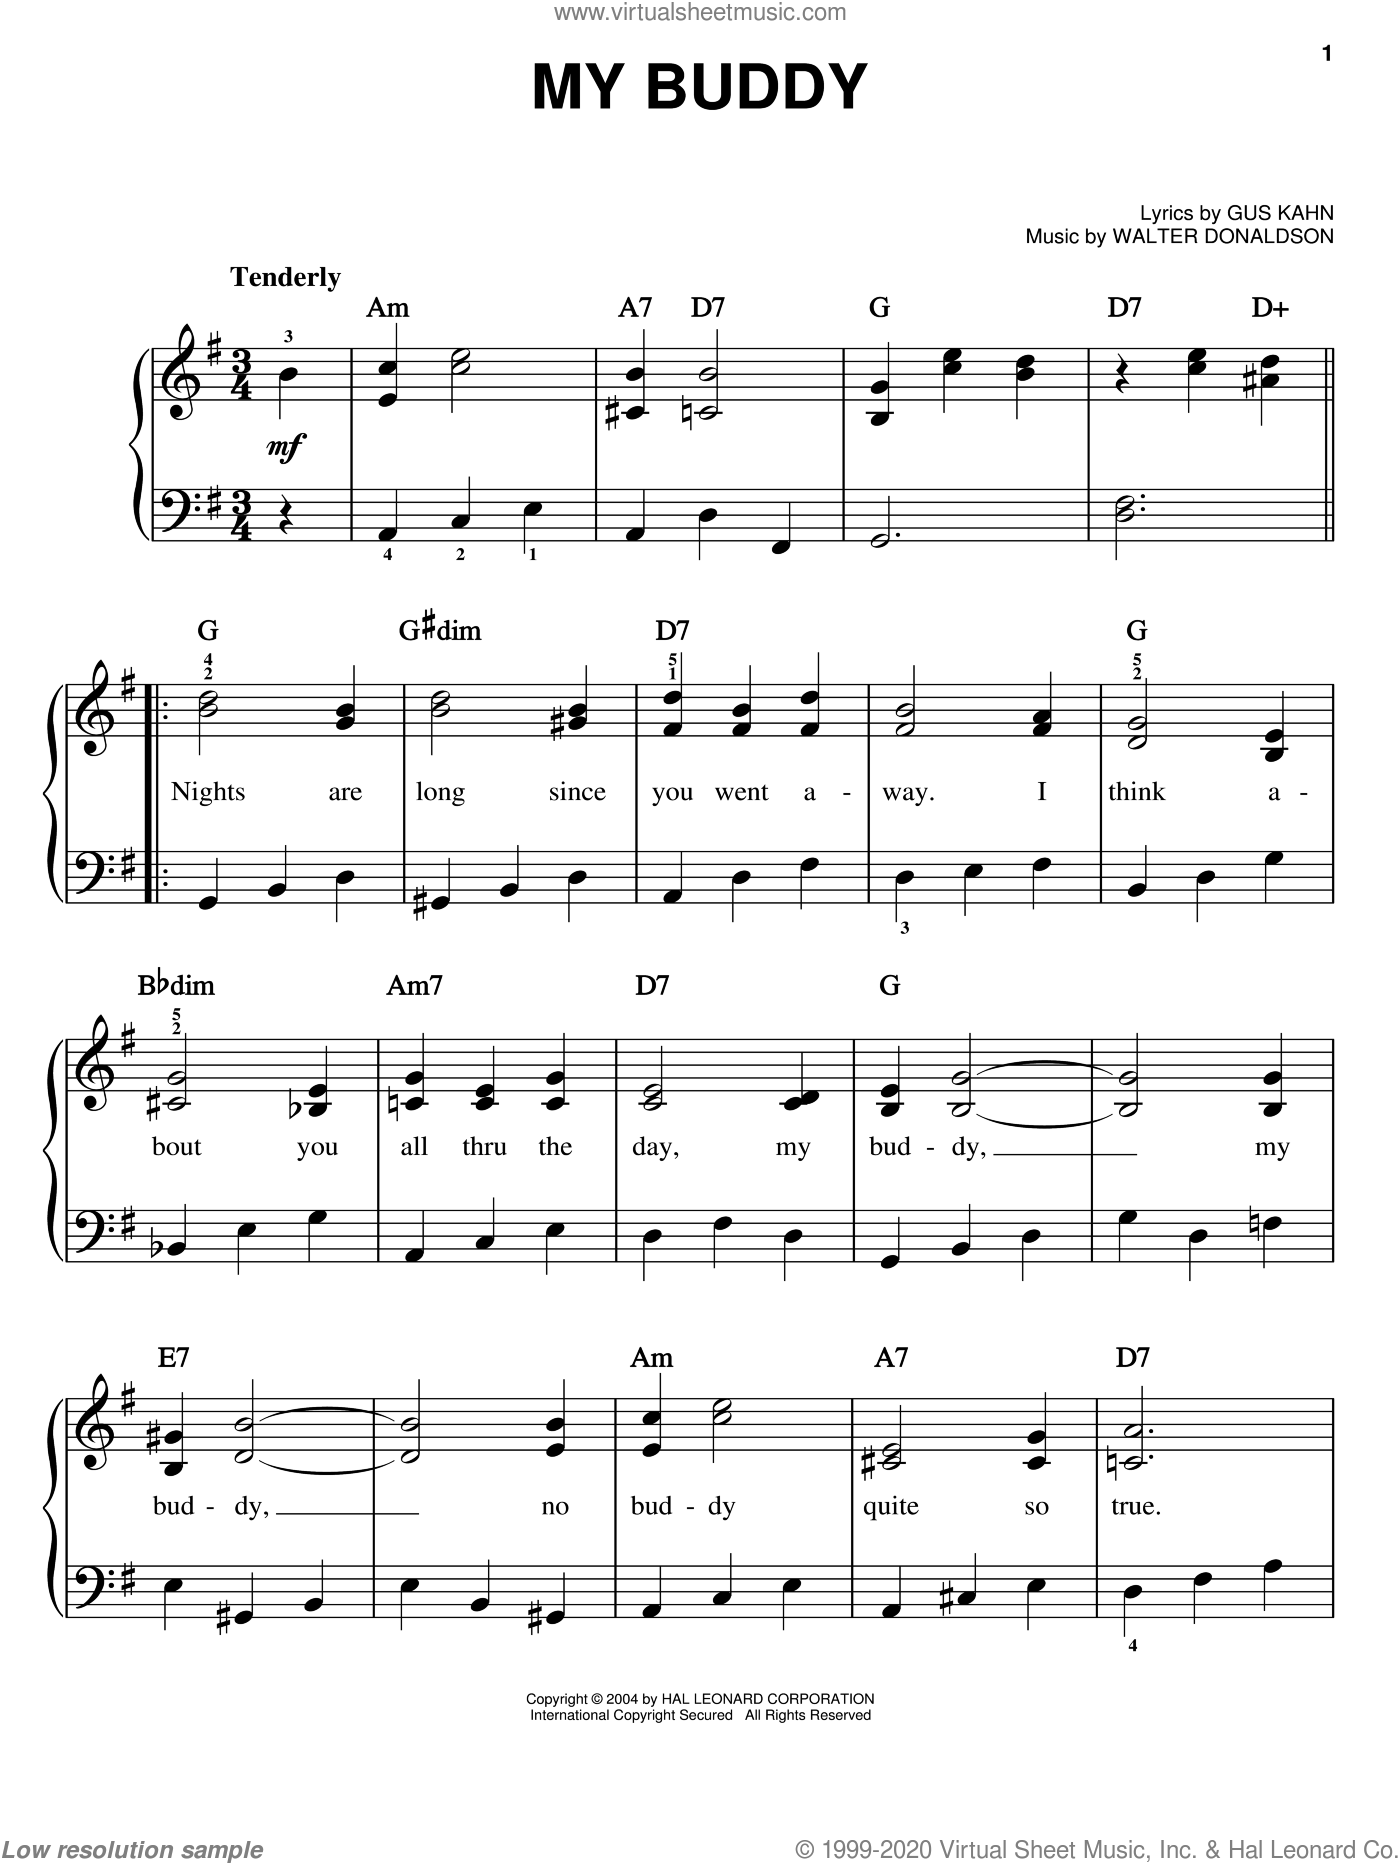 My Buddy sheet music for piano solo by Walter Donaldson